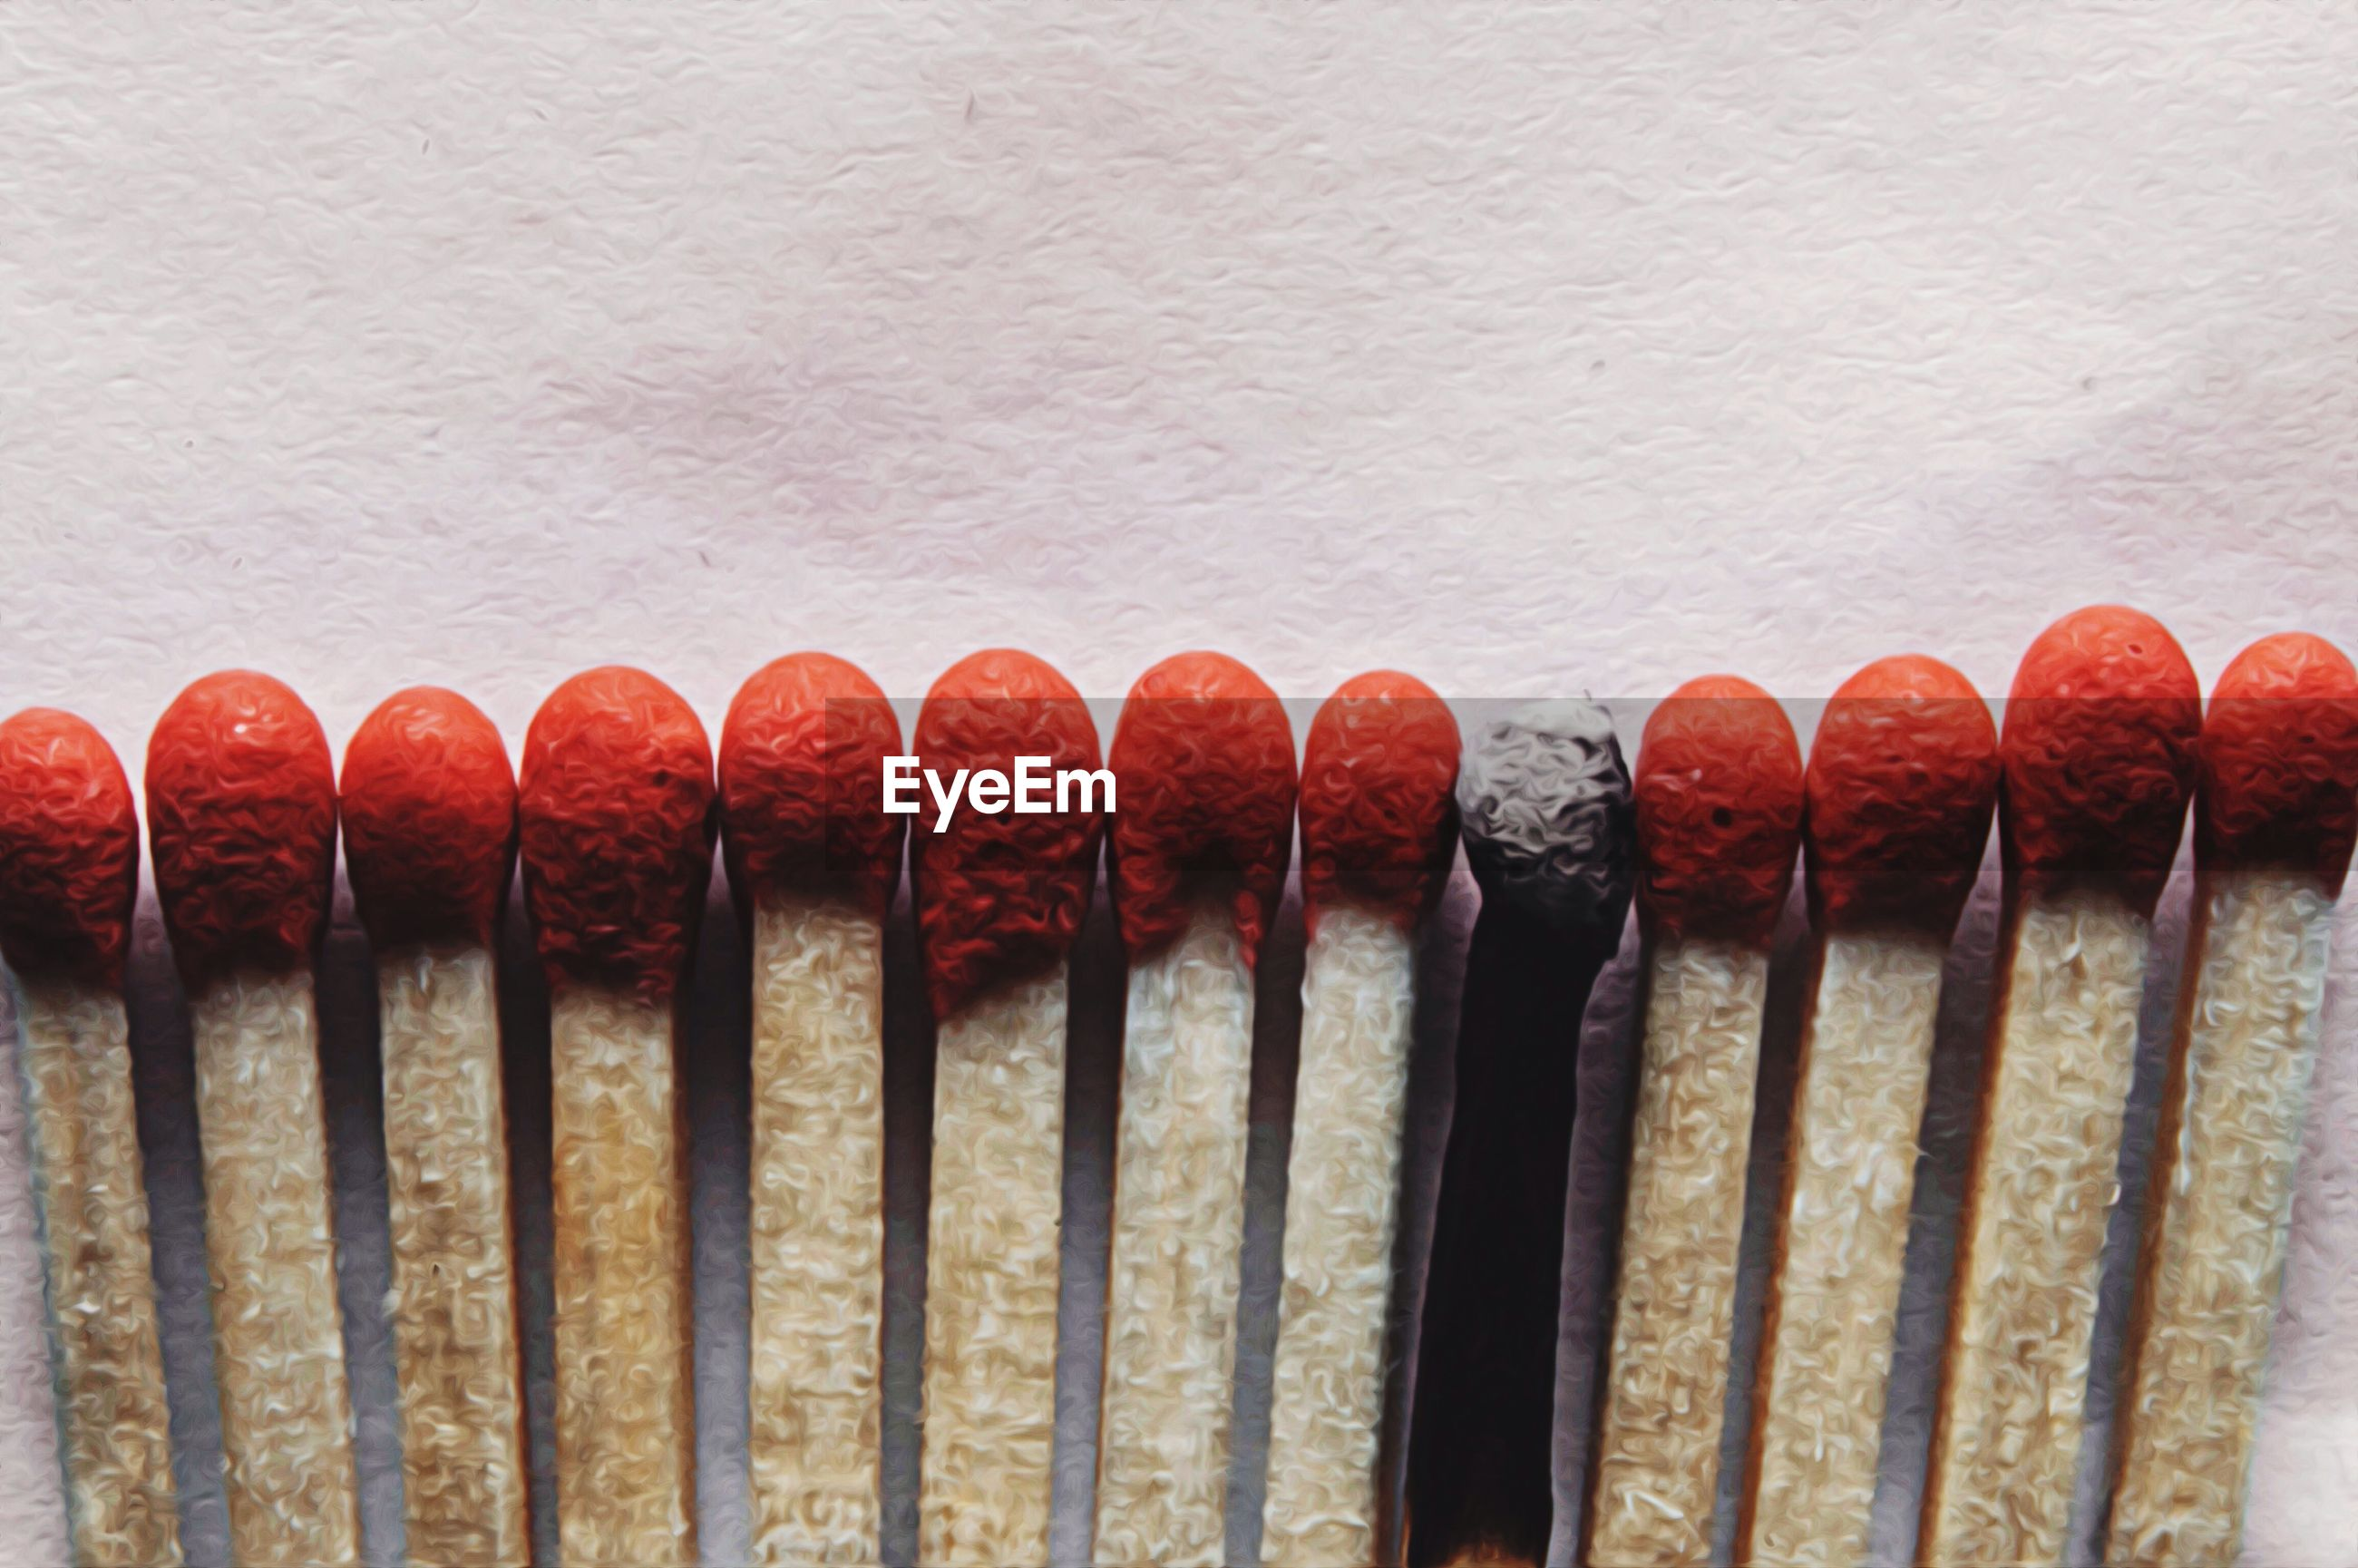 Row of matchsticks with one burnt